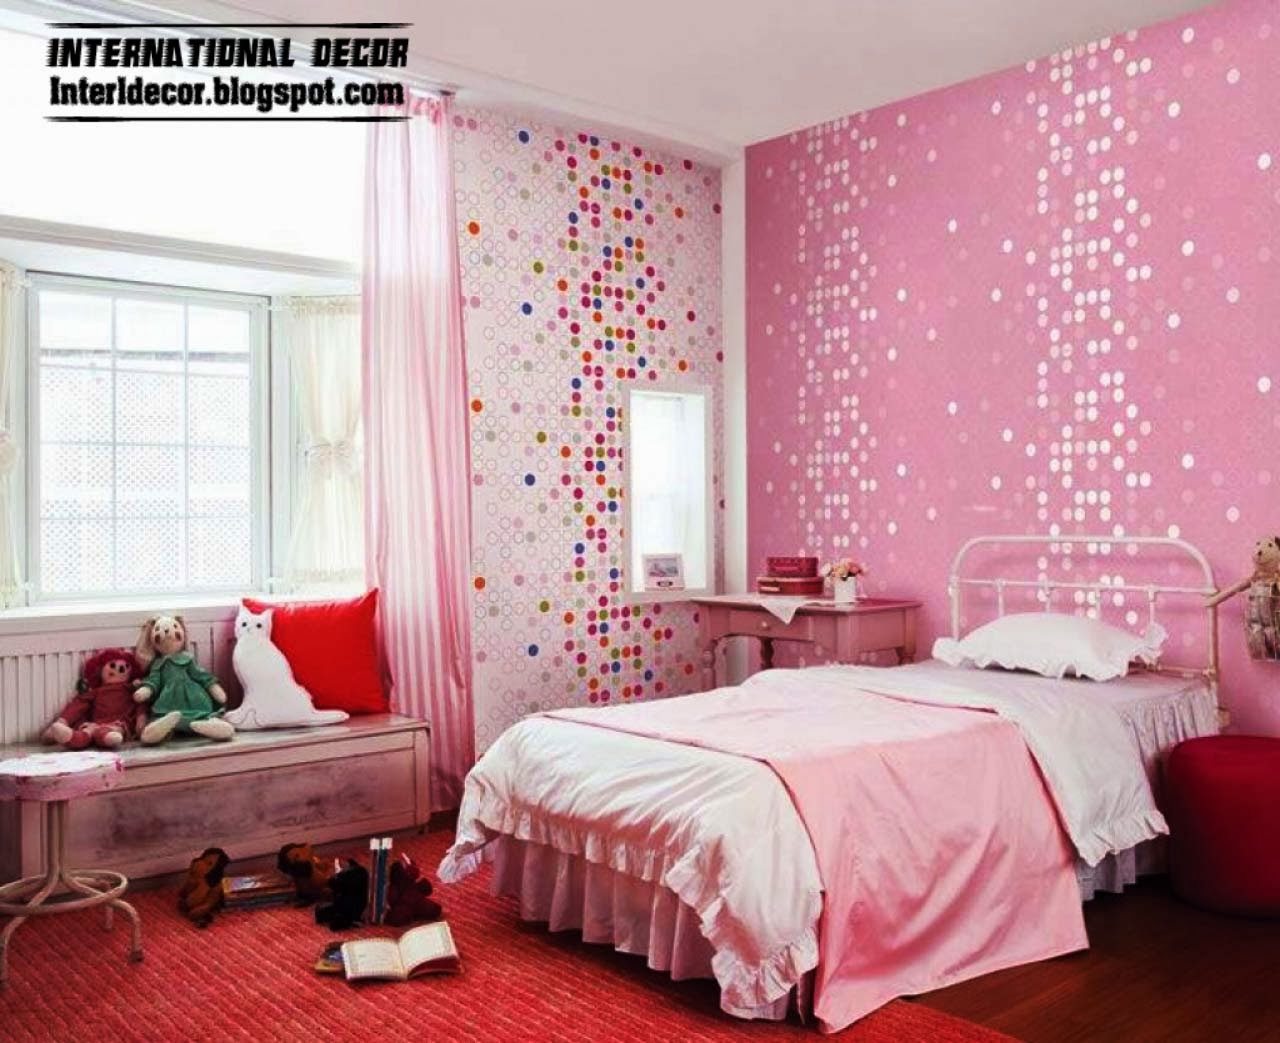 15 Pink Girl's bedroom 2014 : Inspire pink room designs